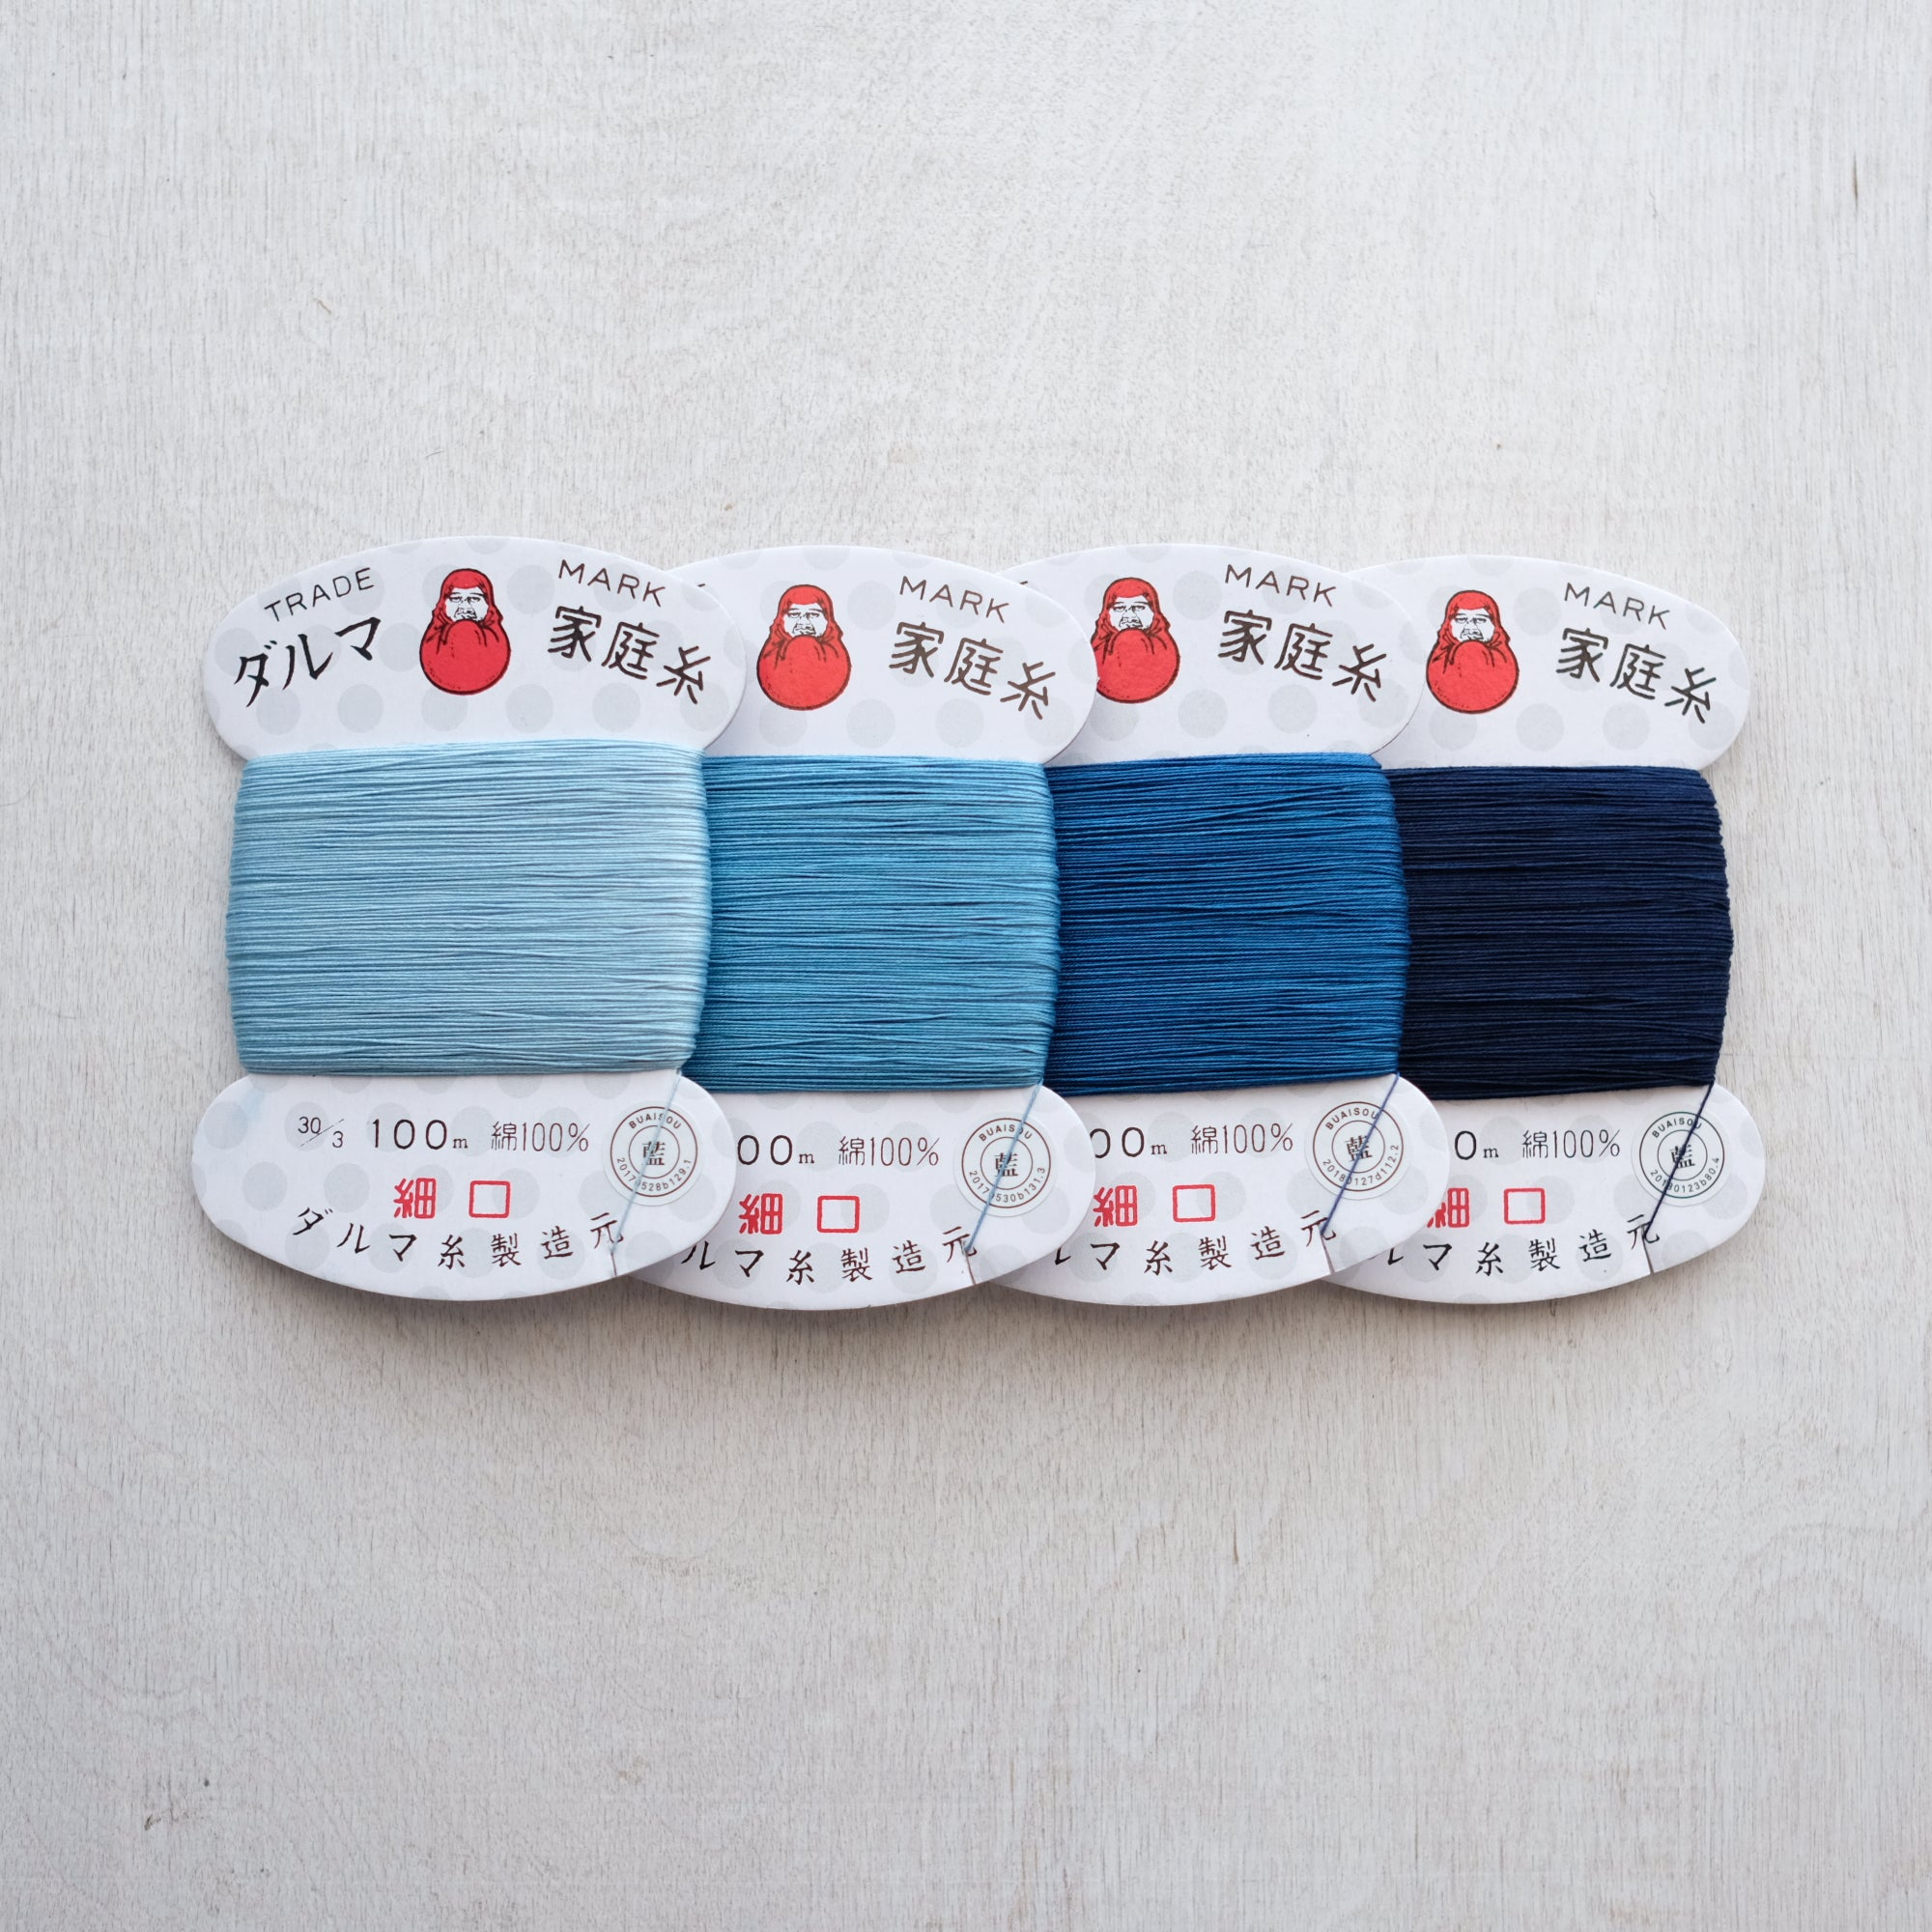 Buaisou - Indigo Dyed Thread - RESTOCKED!